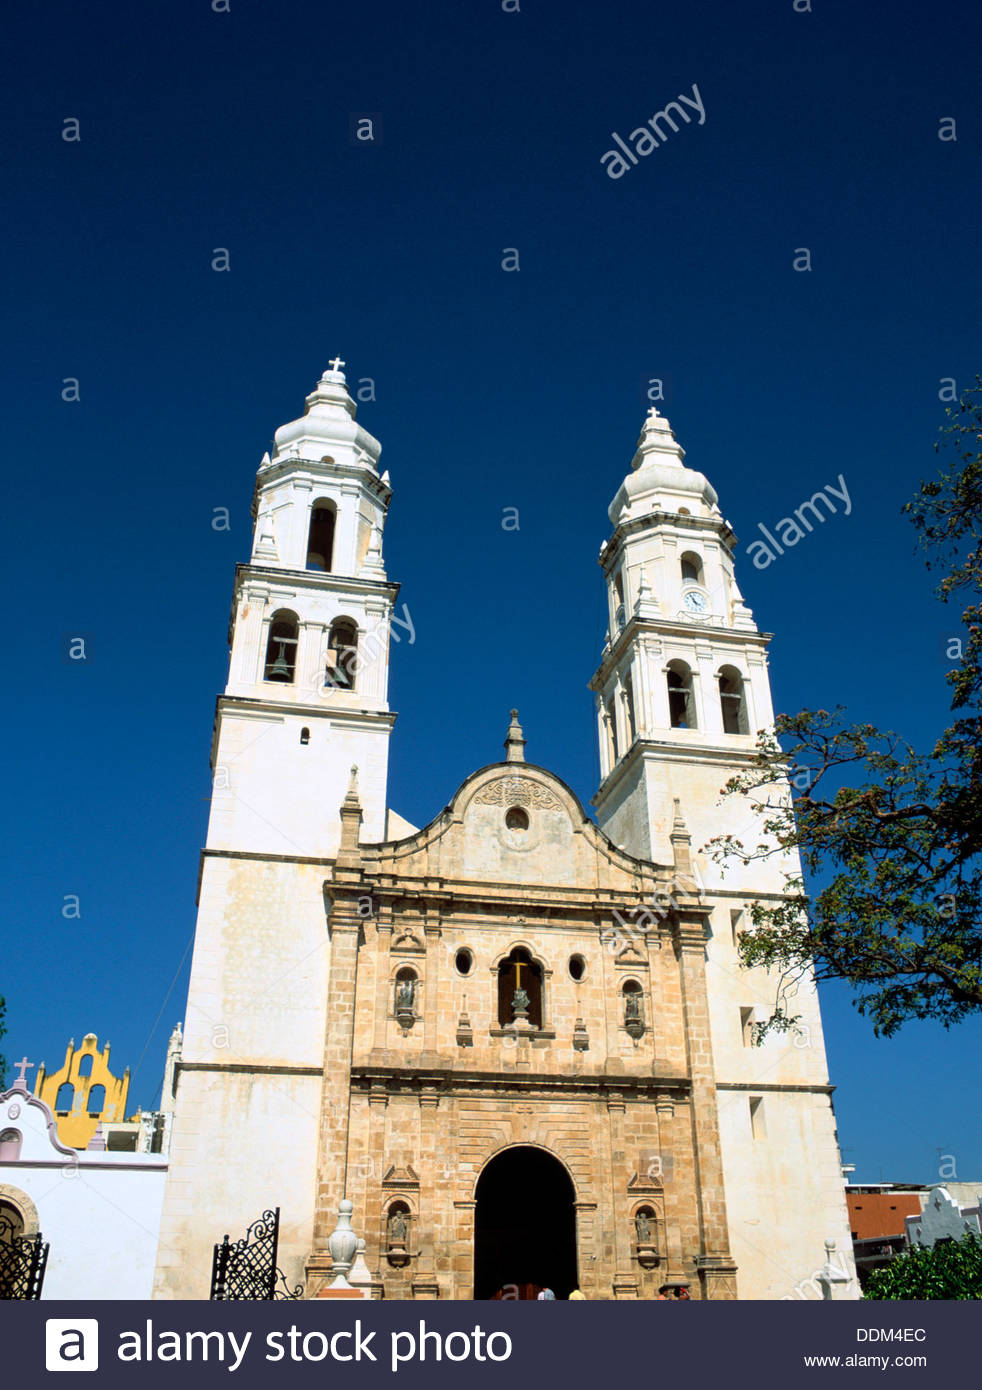 Cathedral of the Immaculate Conception, Campeche, Mexico. Artist: Dr Stephen Coyne - Stock Image